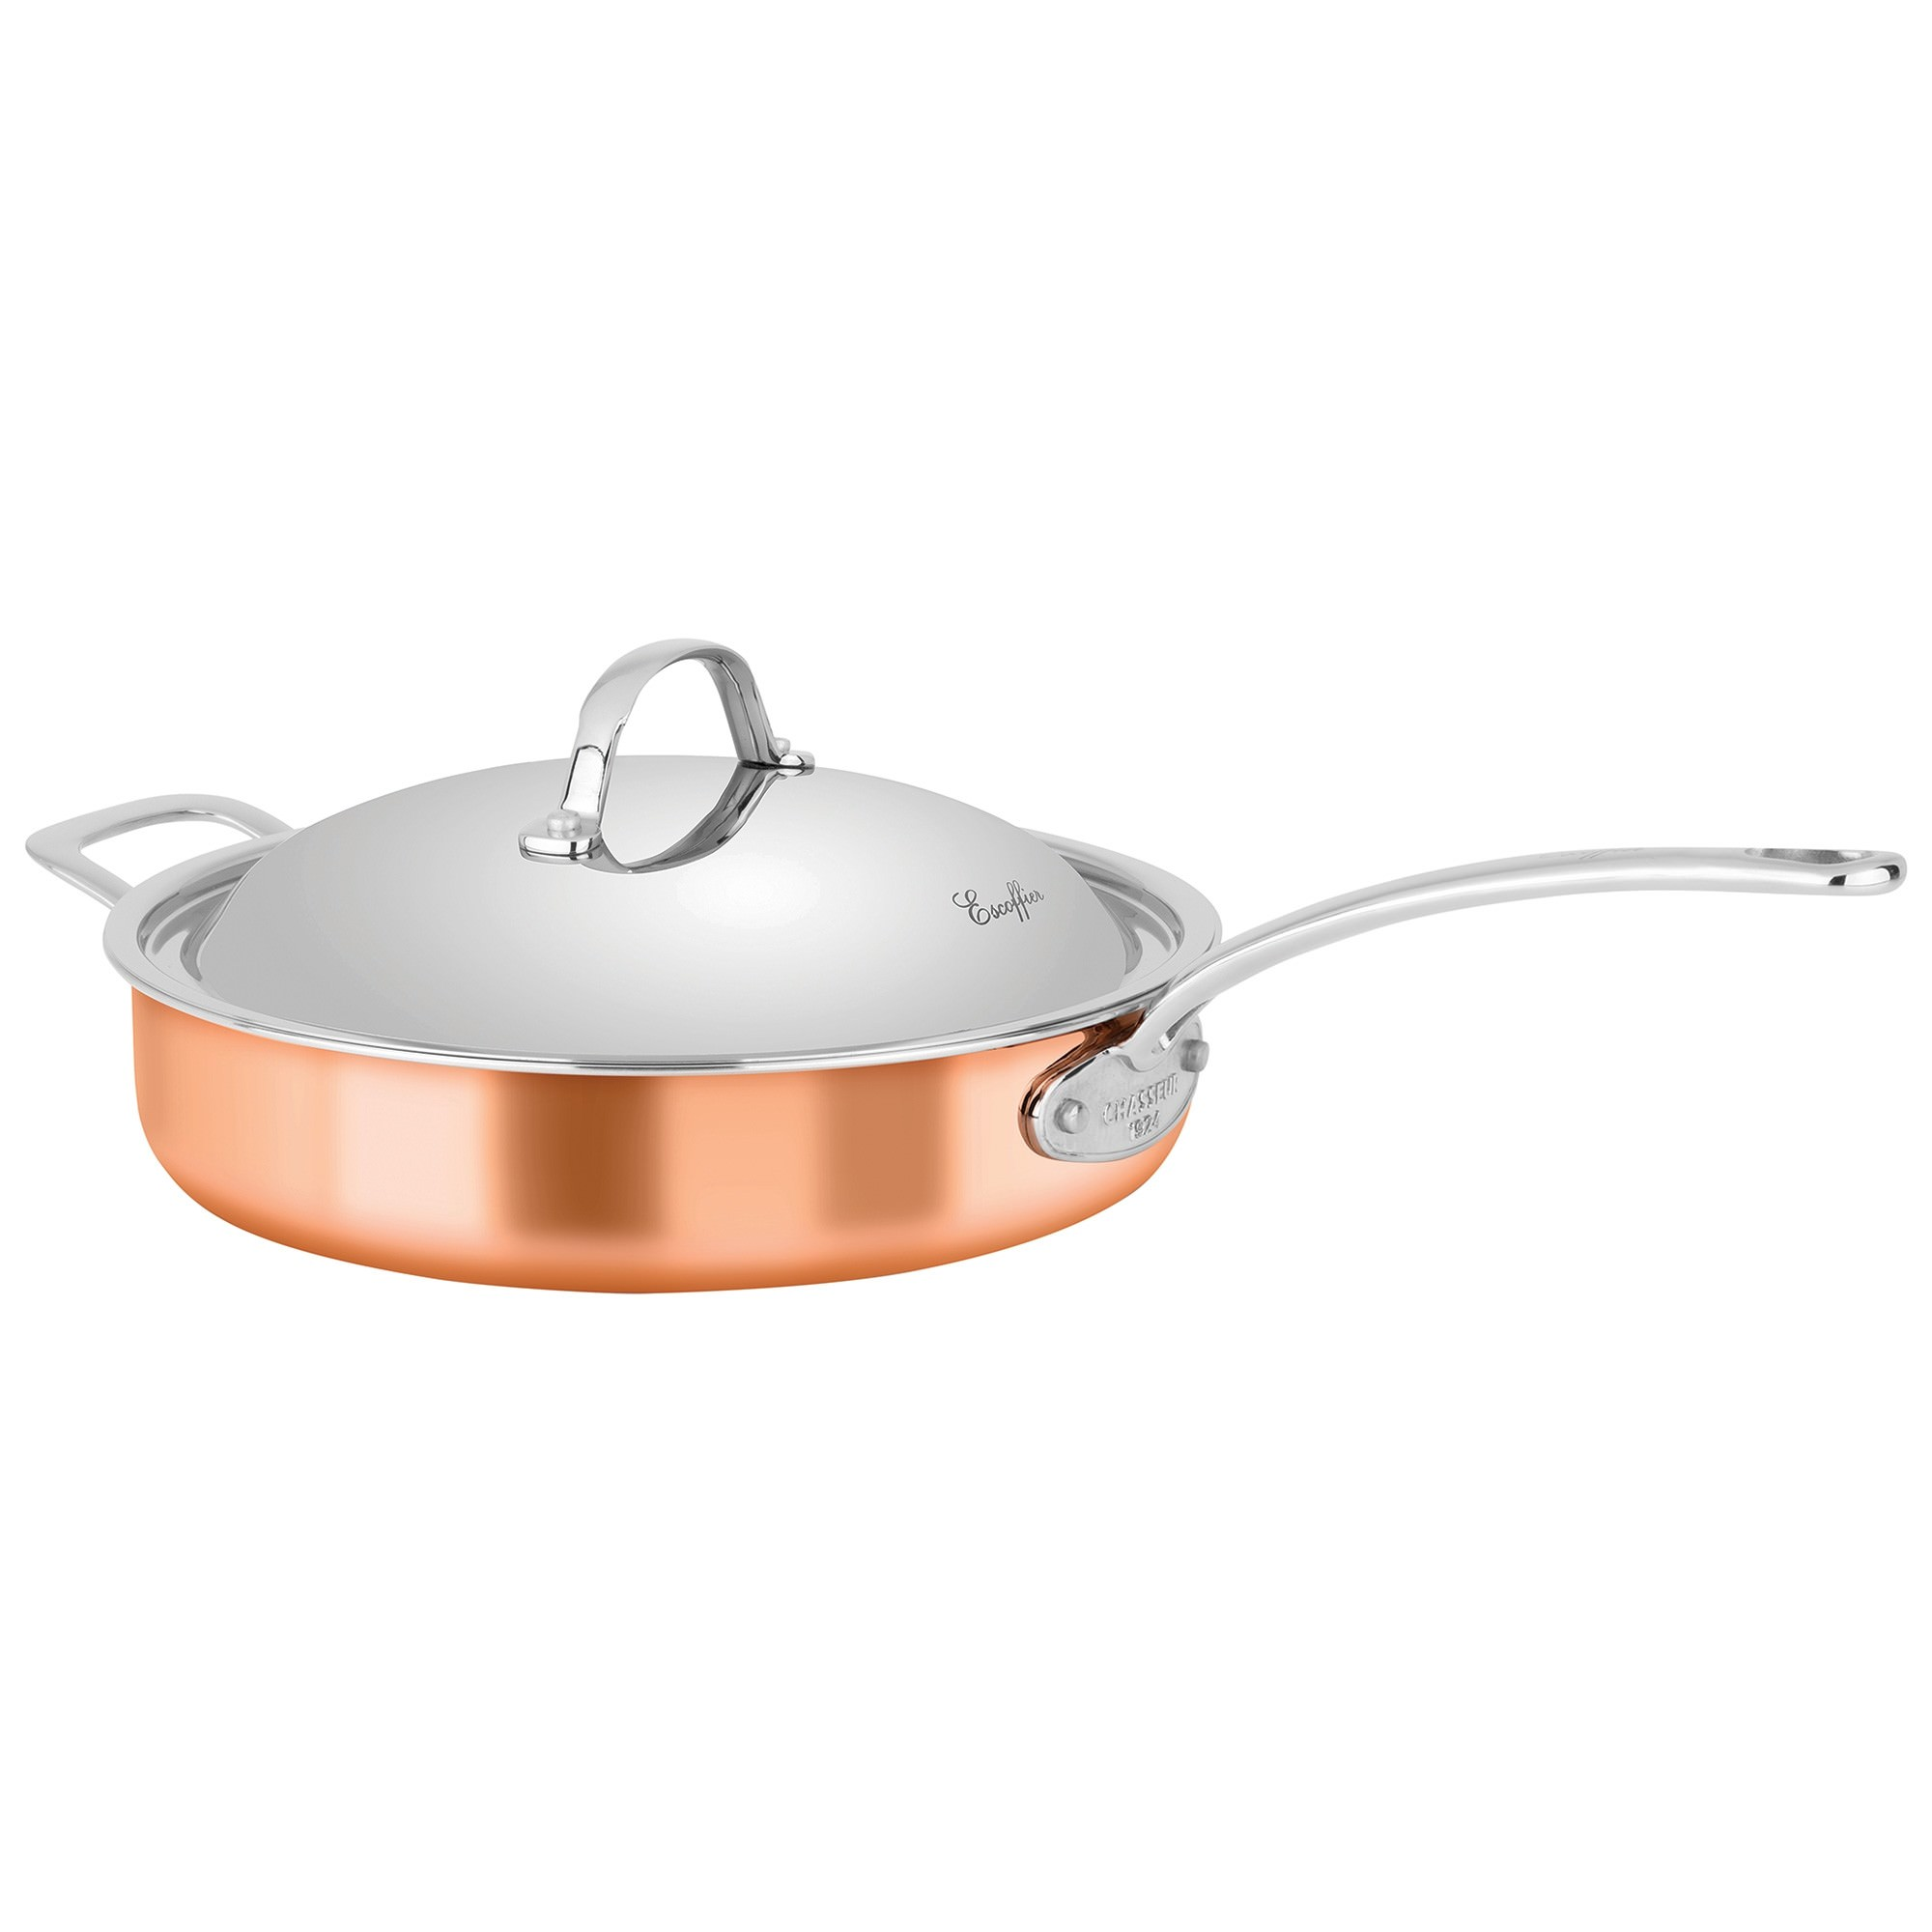 Chasseur Escoffier 28cm Saute Pan with Lid and Helper Handle